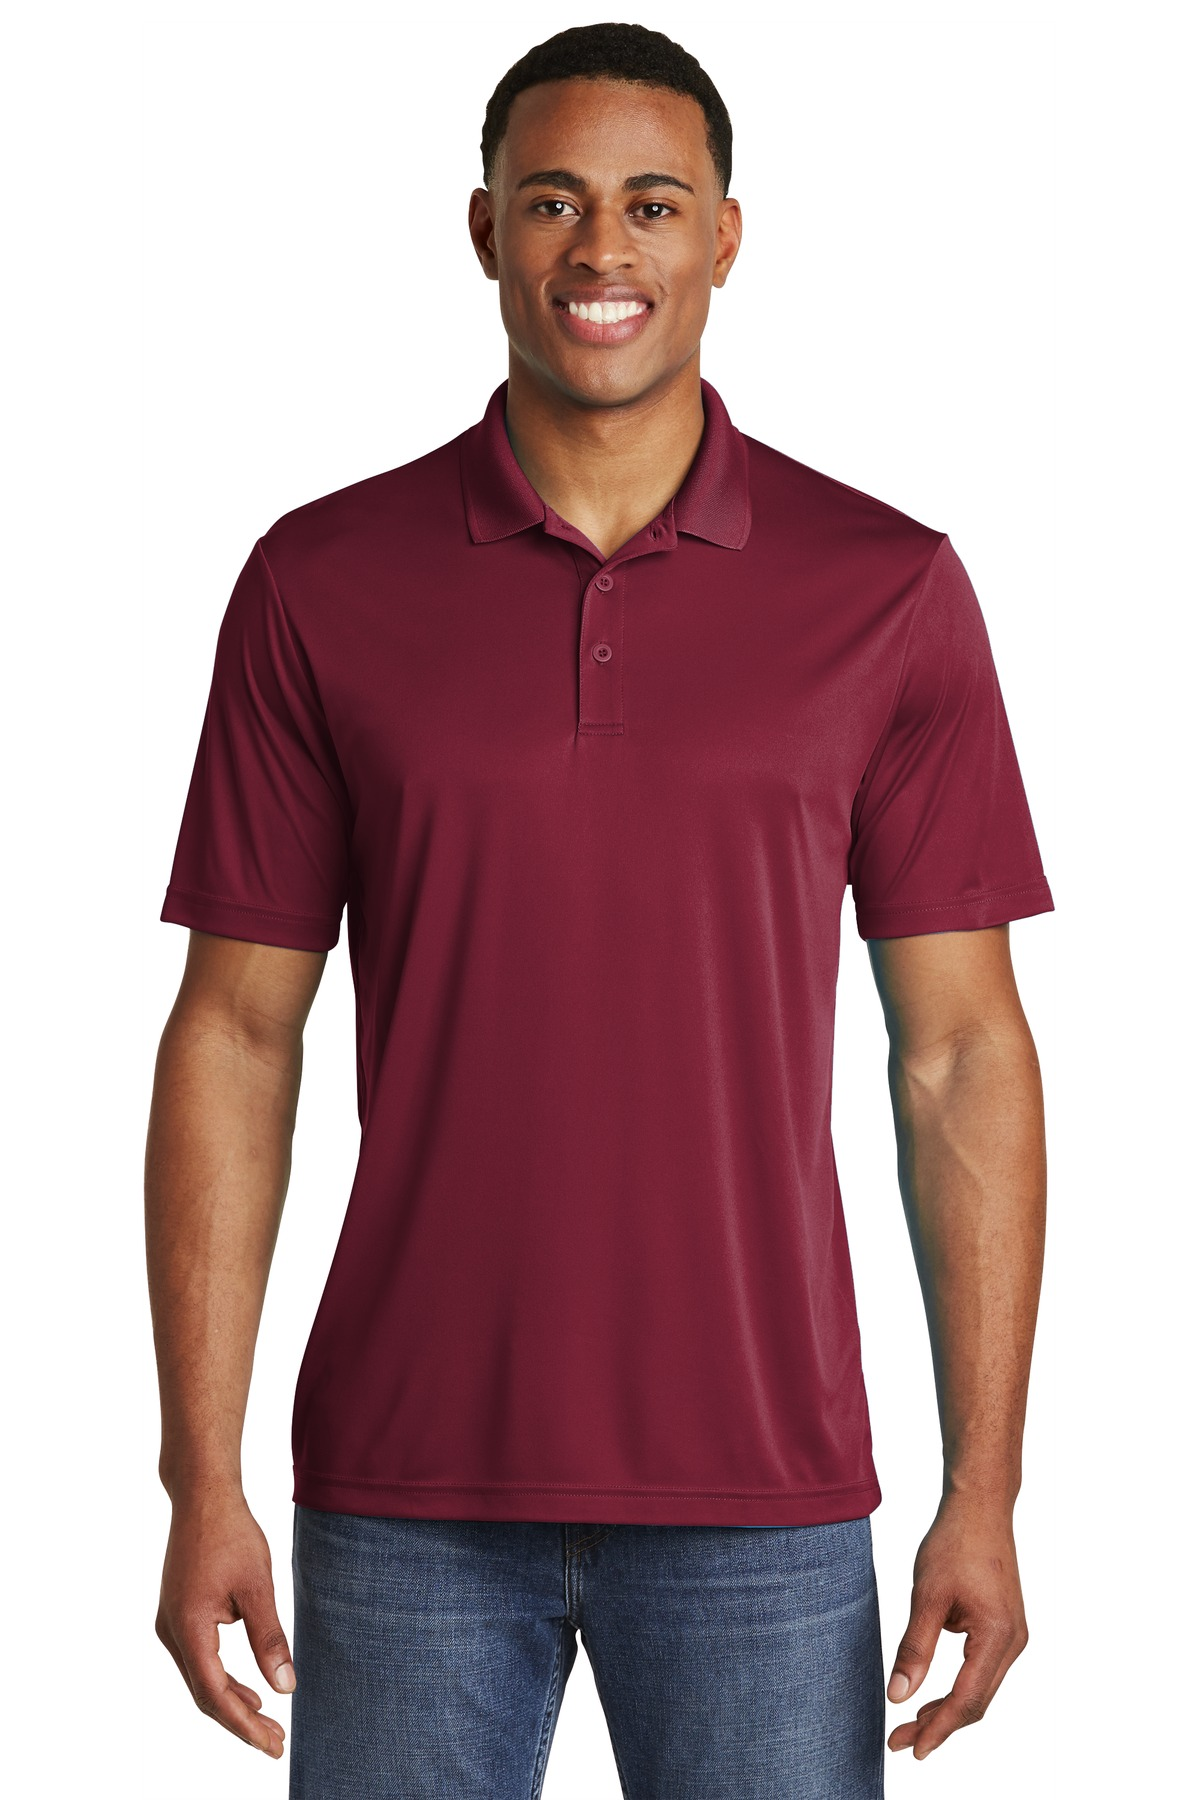 Sport-Tek  ®  PosiCharge  ®  Competitor  ™  Polo. ST550 - Maroon